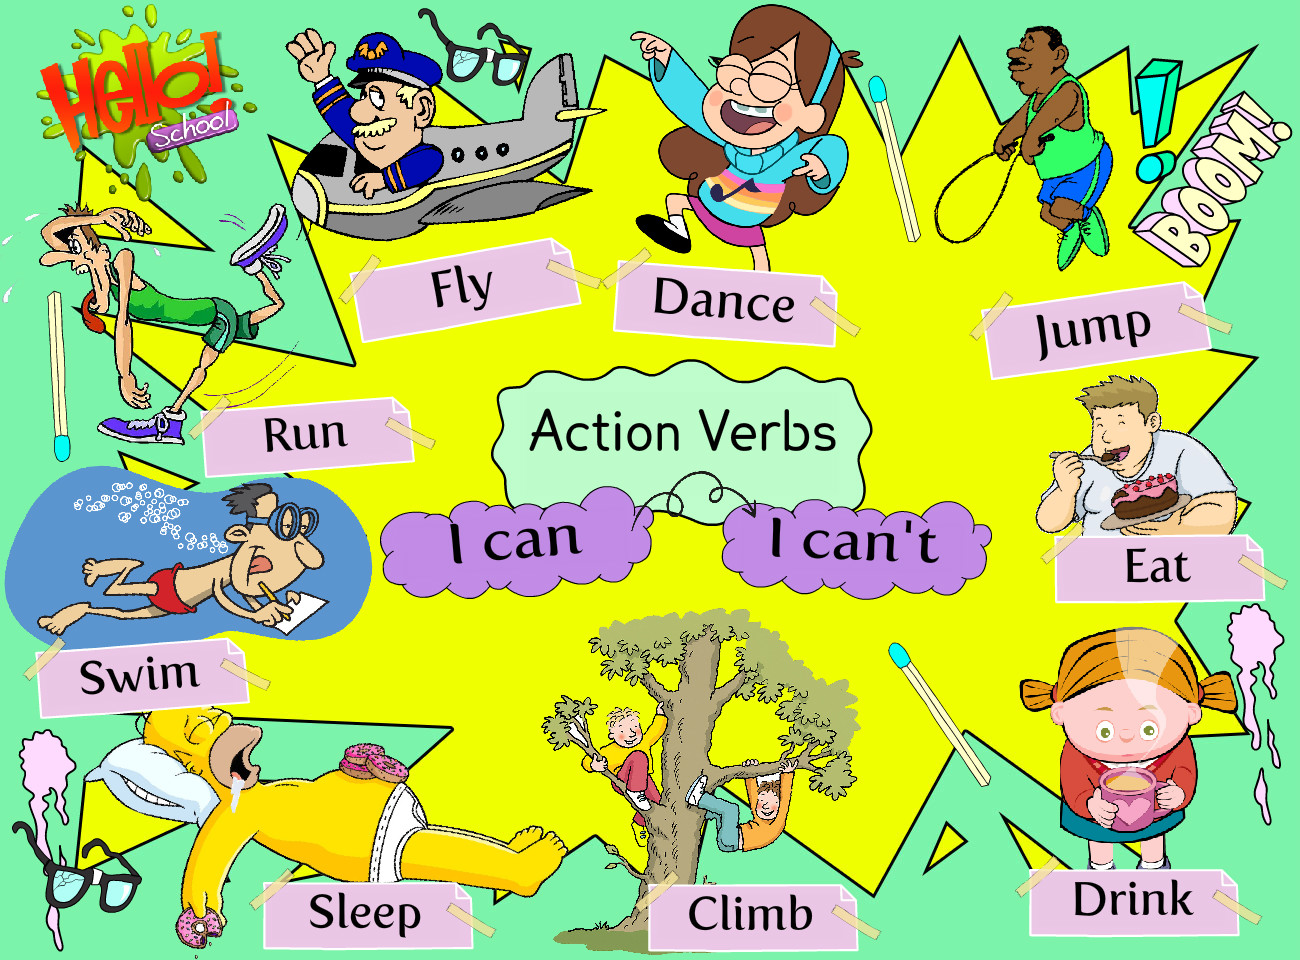 Action Verbs Preschool Text Images Music Video